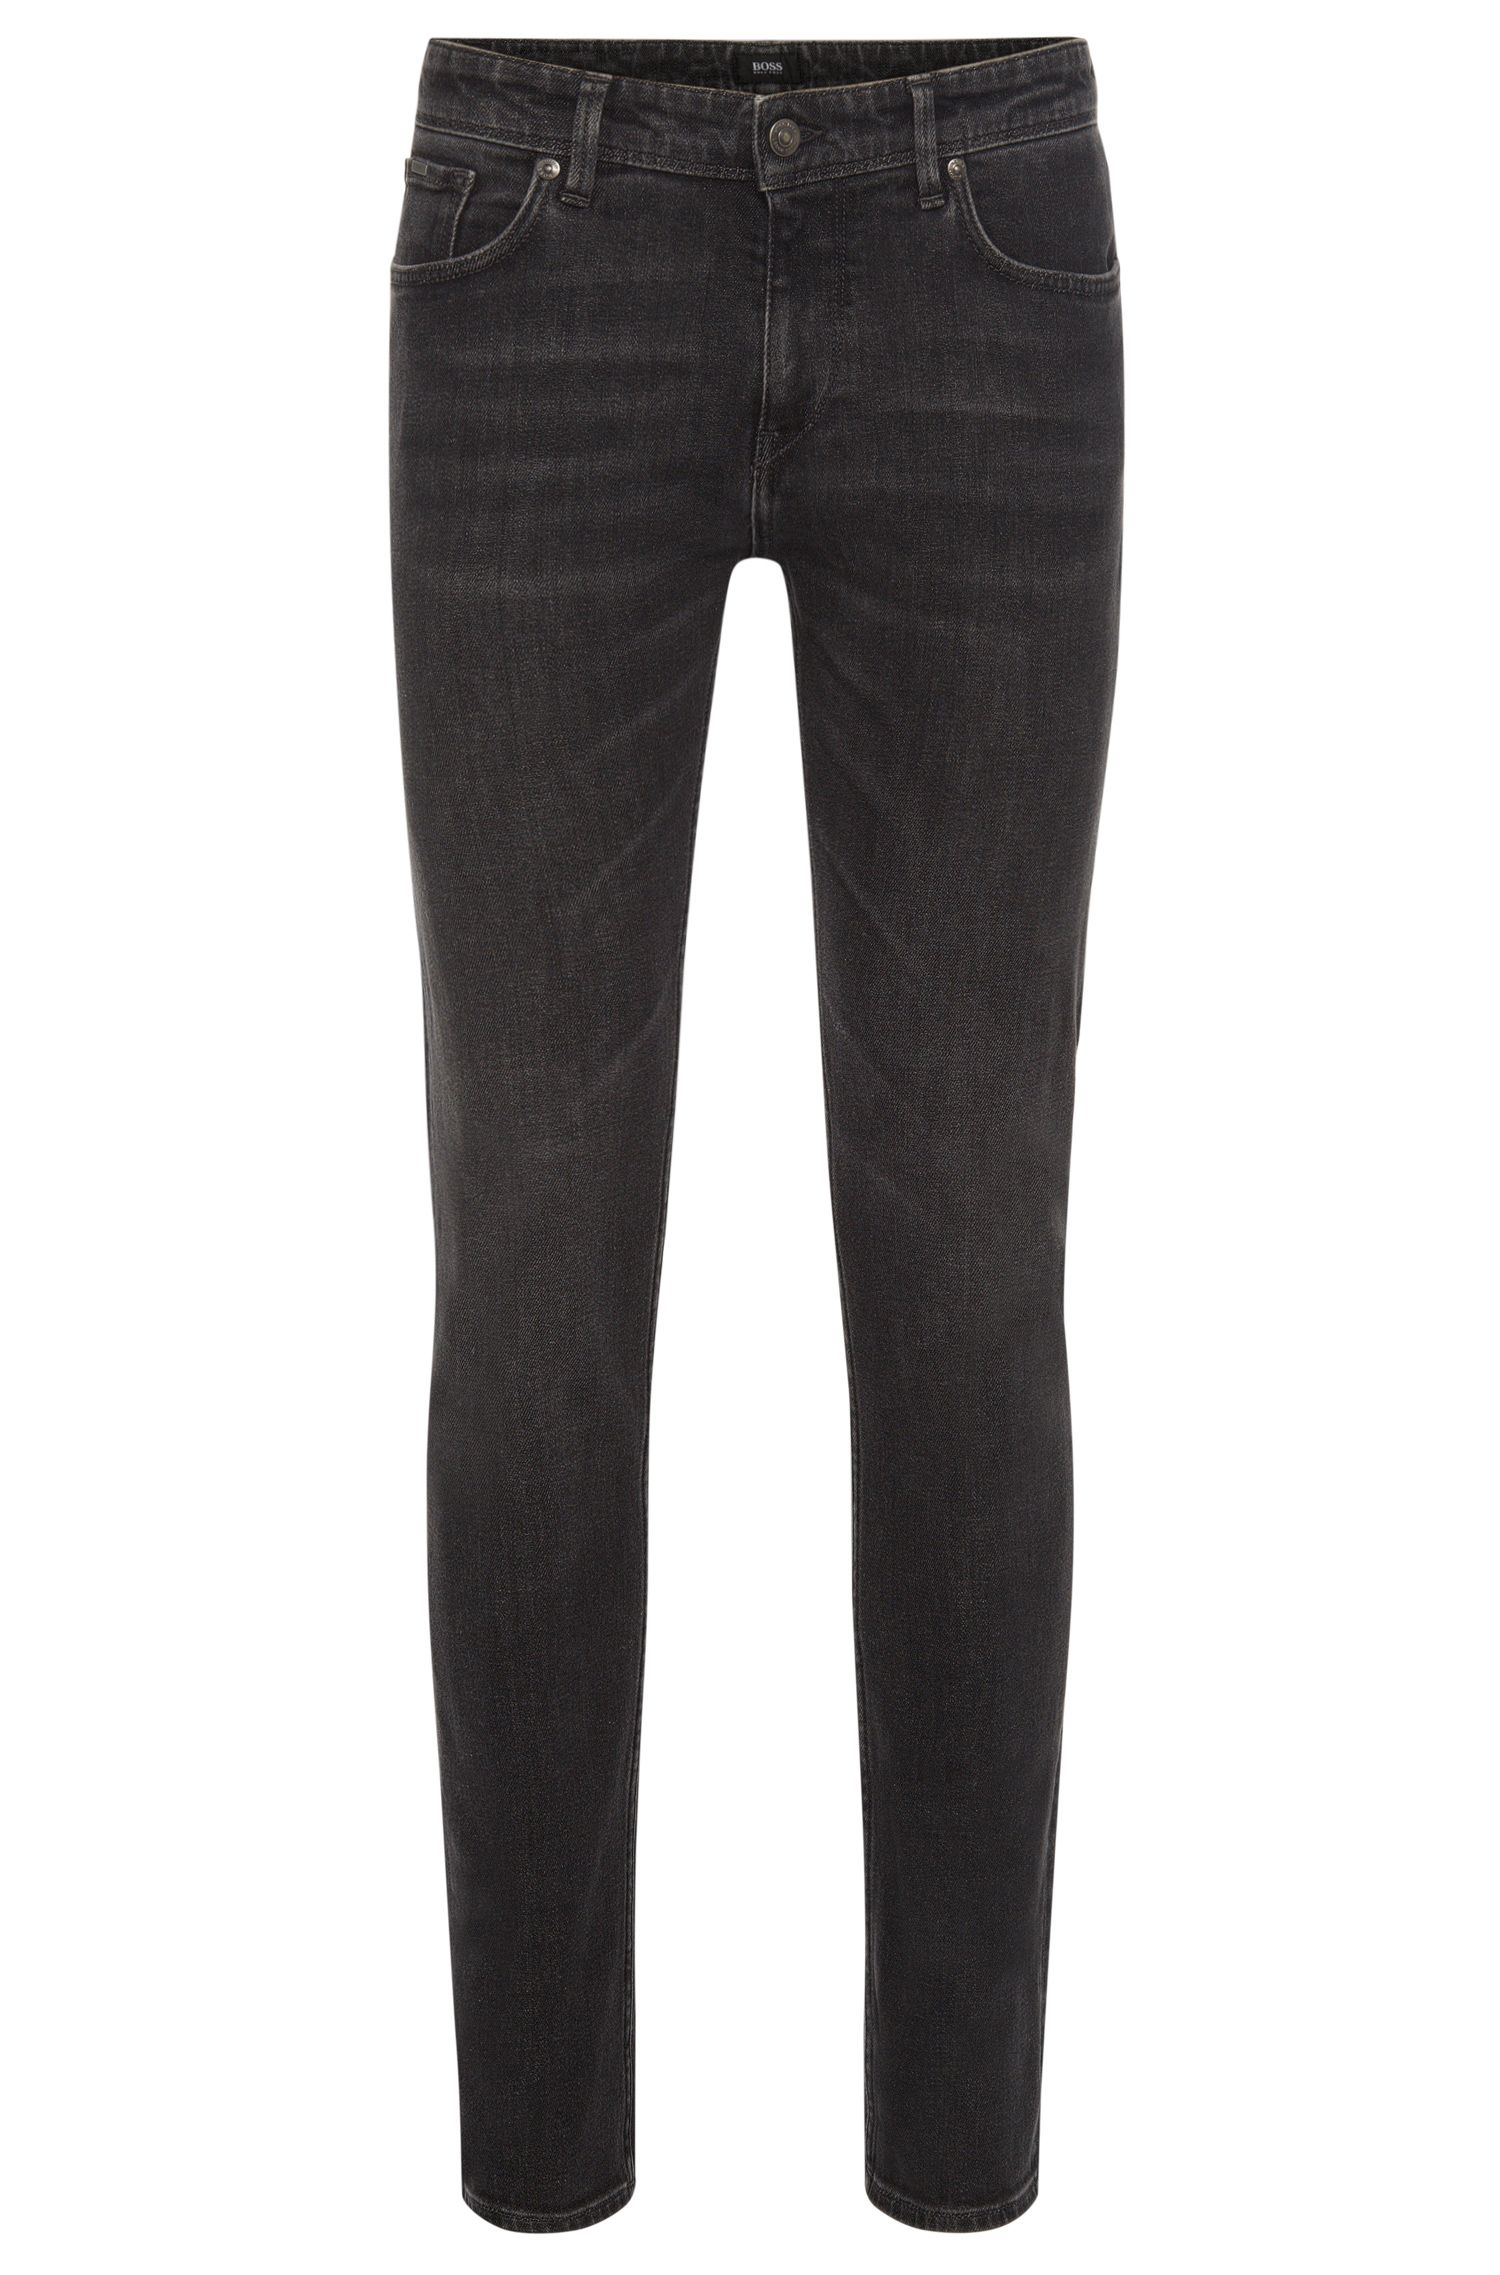 Slim-Fit Jeans aus Stretch-Baumwolle mit dezenter Used-Waschung: 'Charleston3'